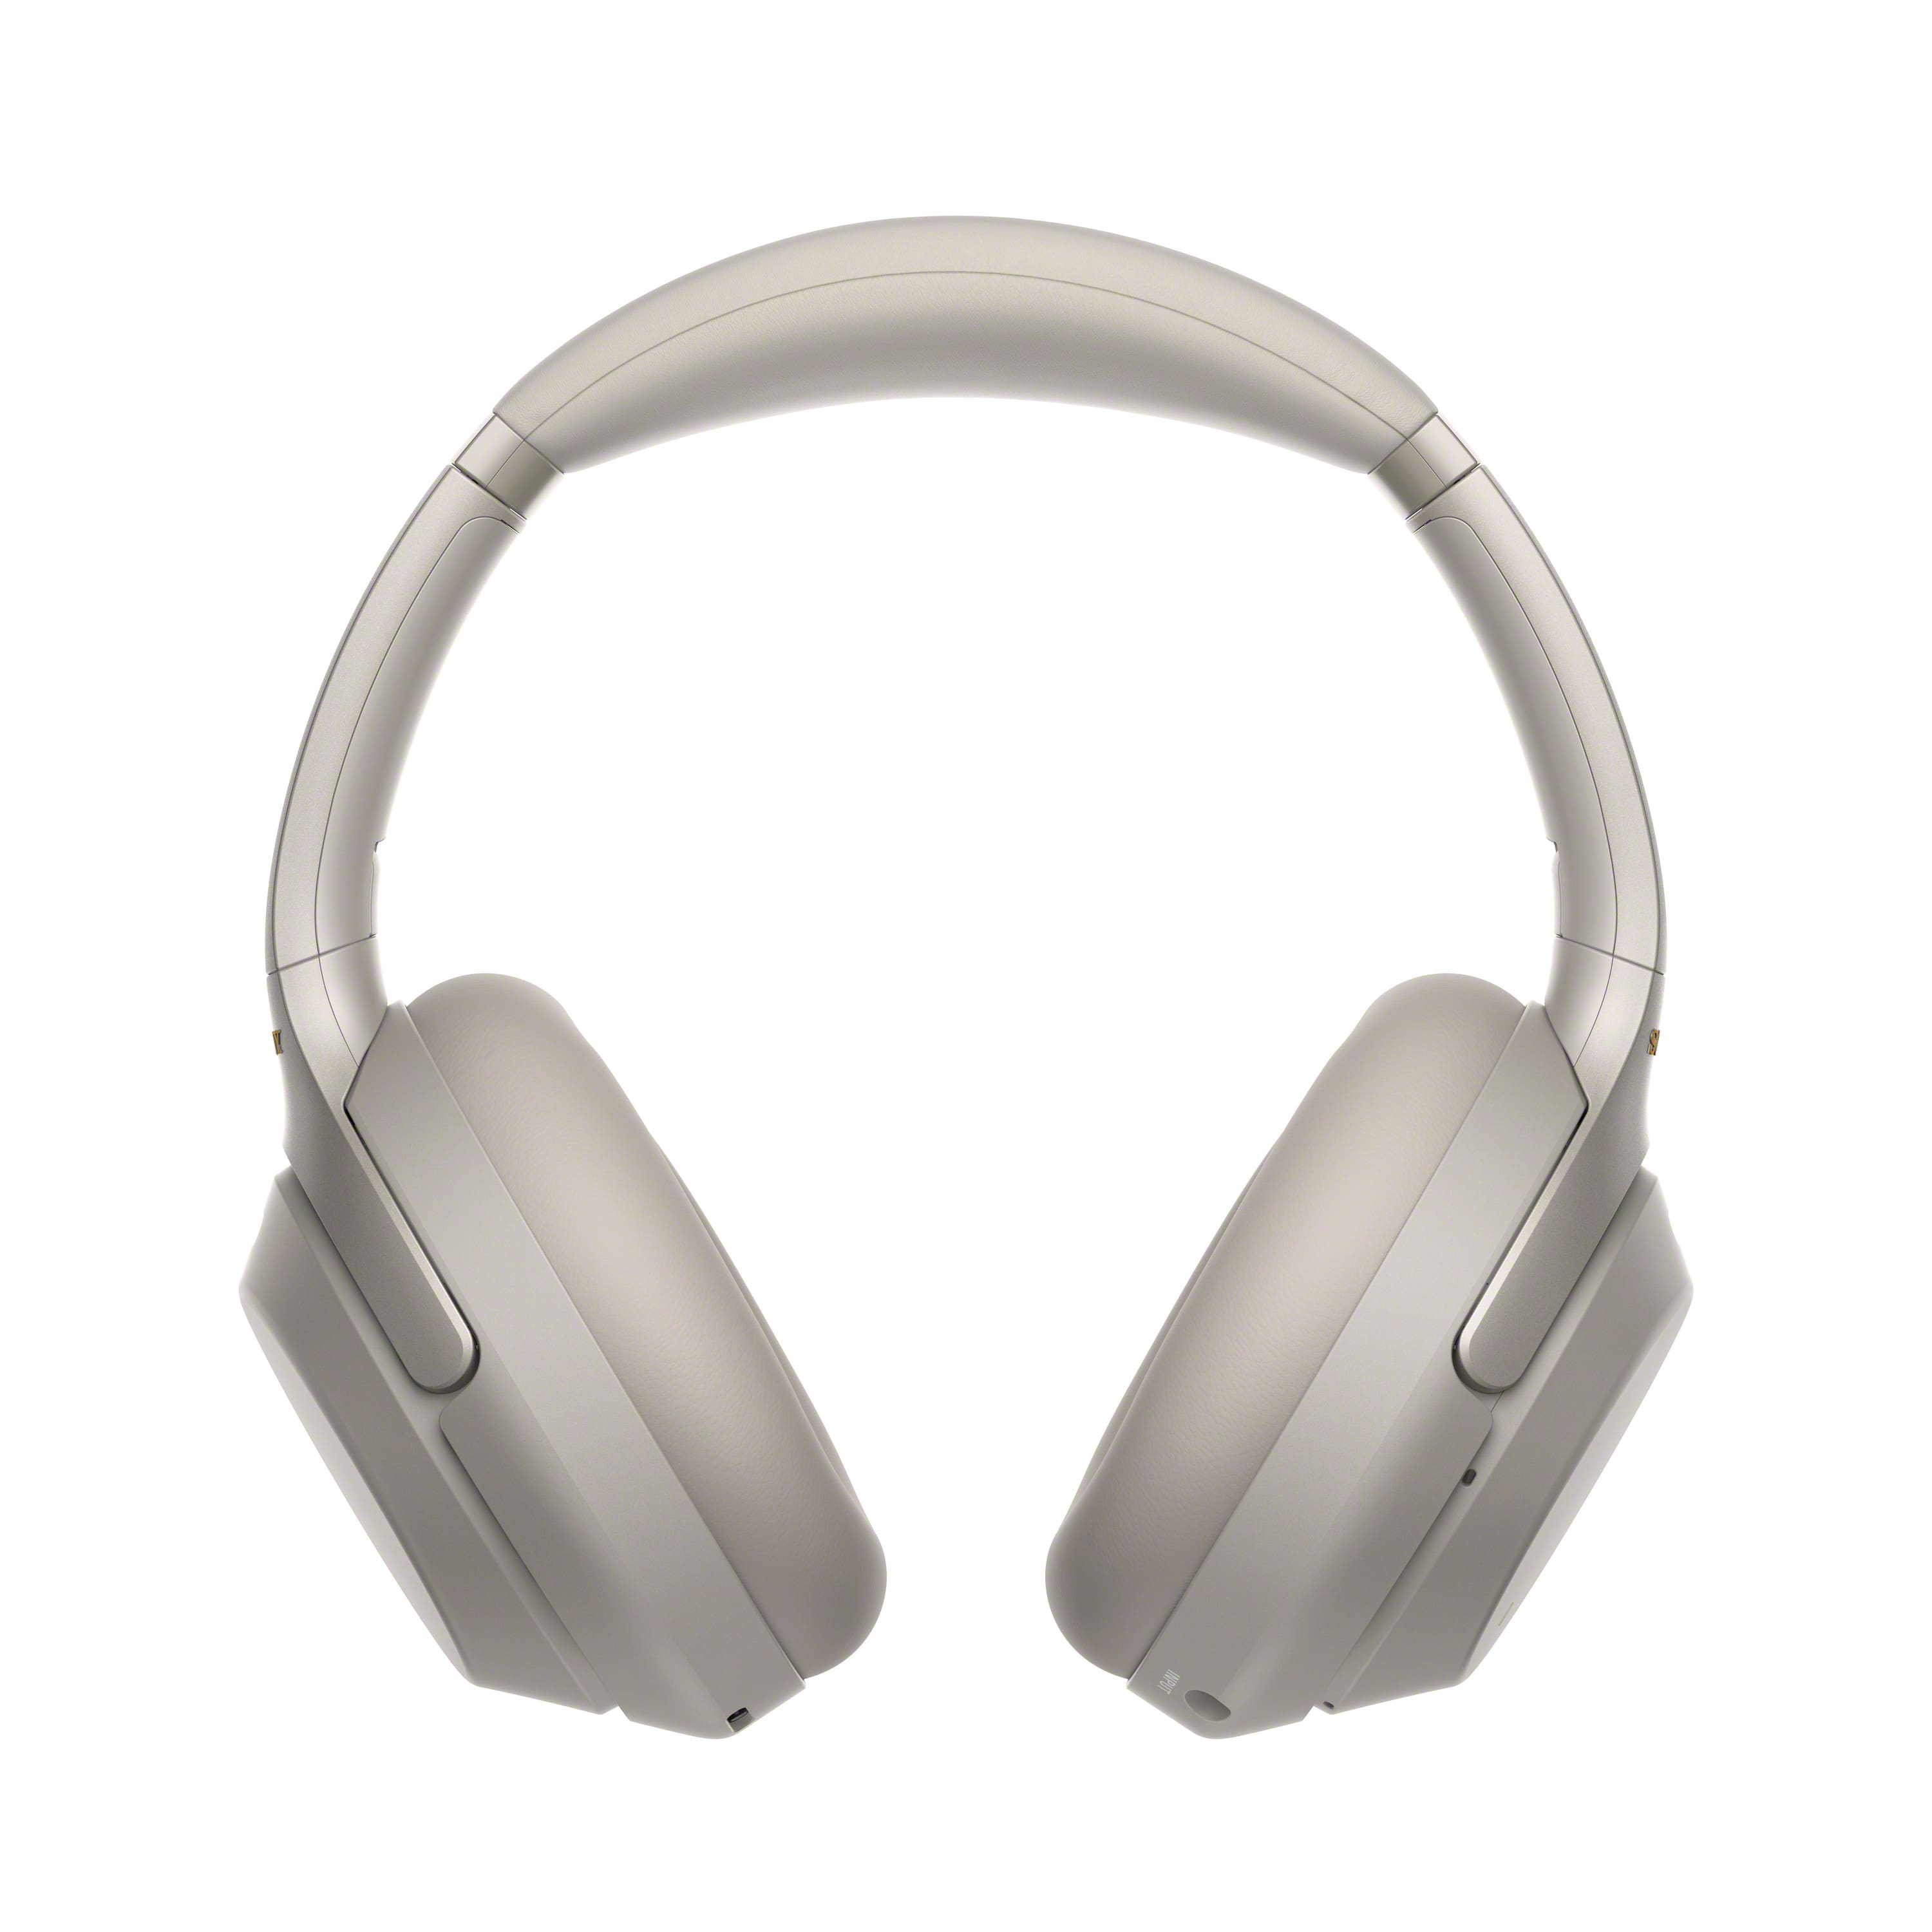 Sony WH-1000XM3 Wireless Noise Canceling Over-Ear Headphones w/ Google Assistant Manufacturer Refurbished for $199.99 + Free Shipping